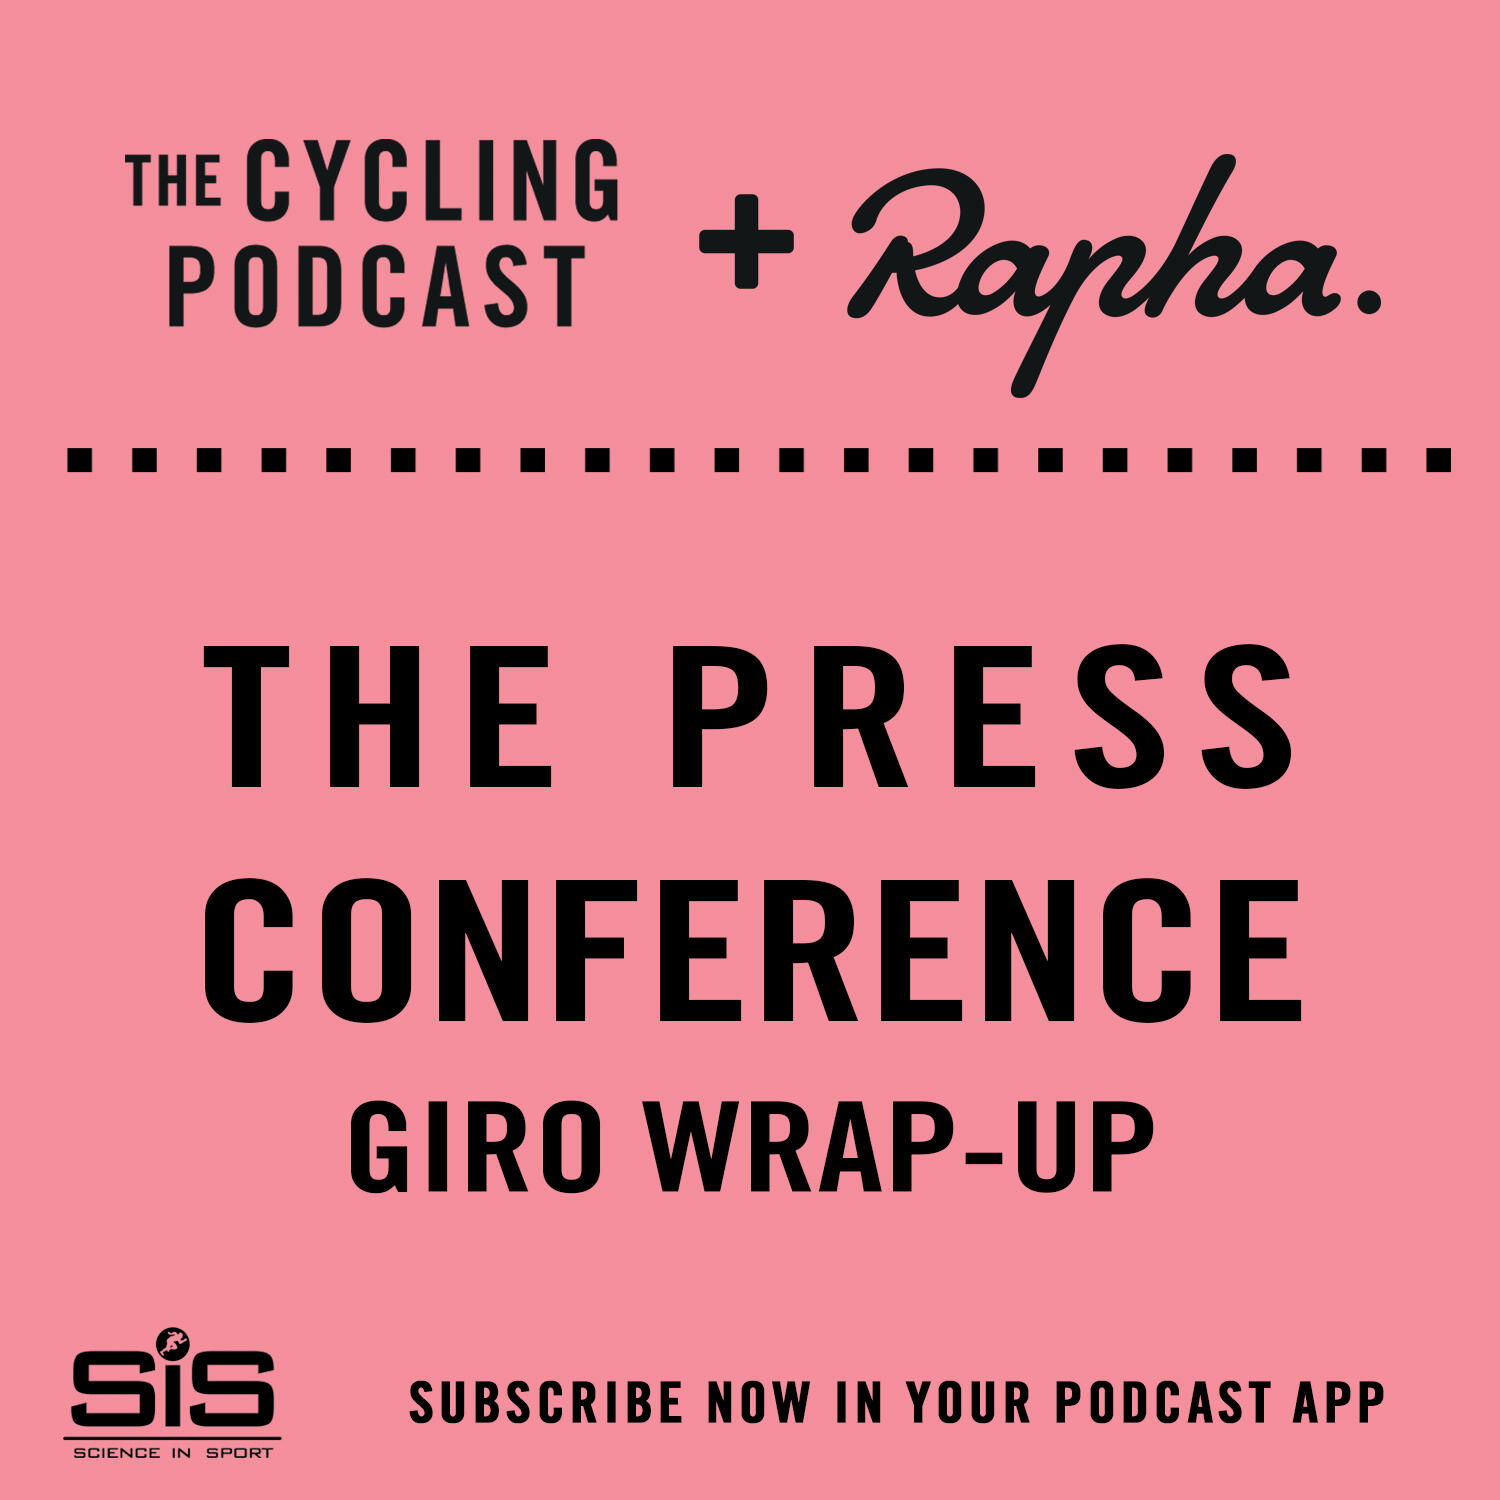 64: The Post-Giro Press Conference